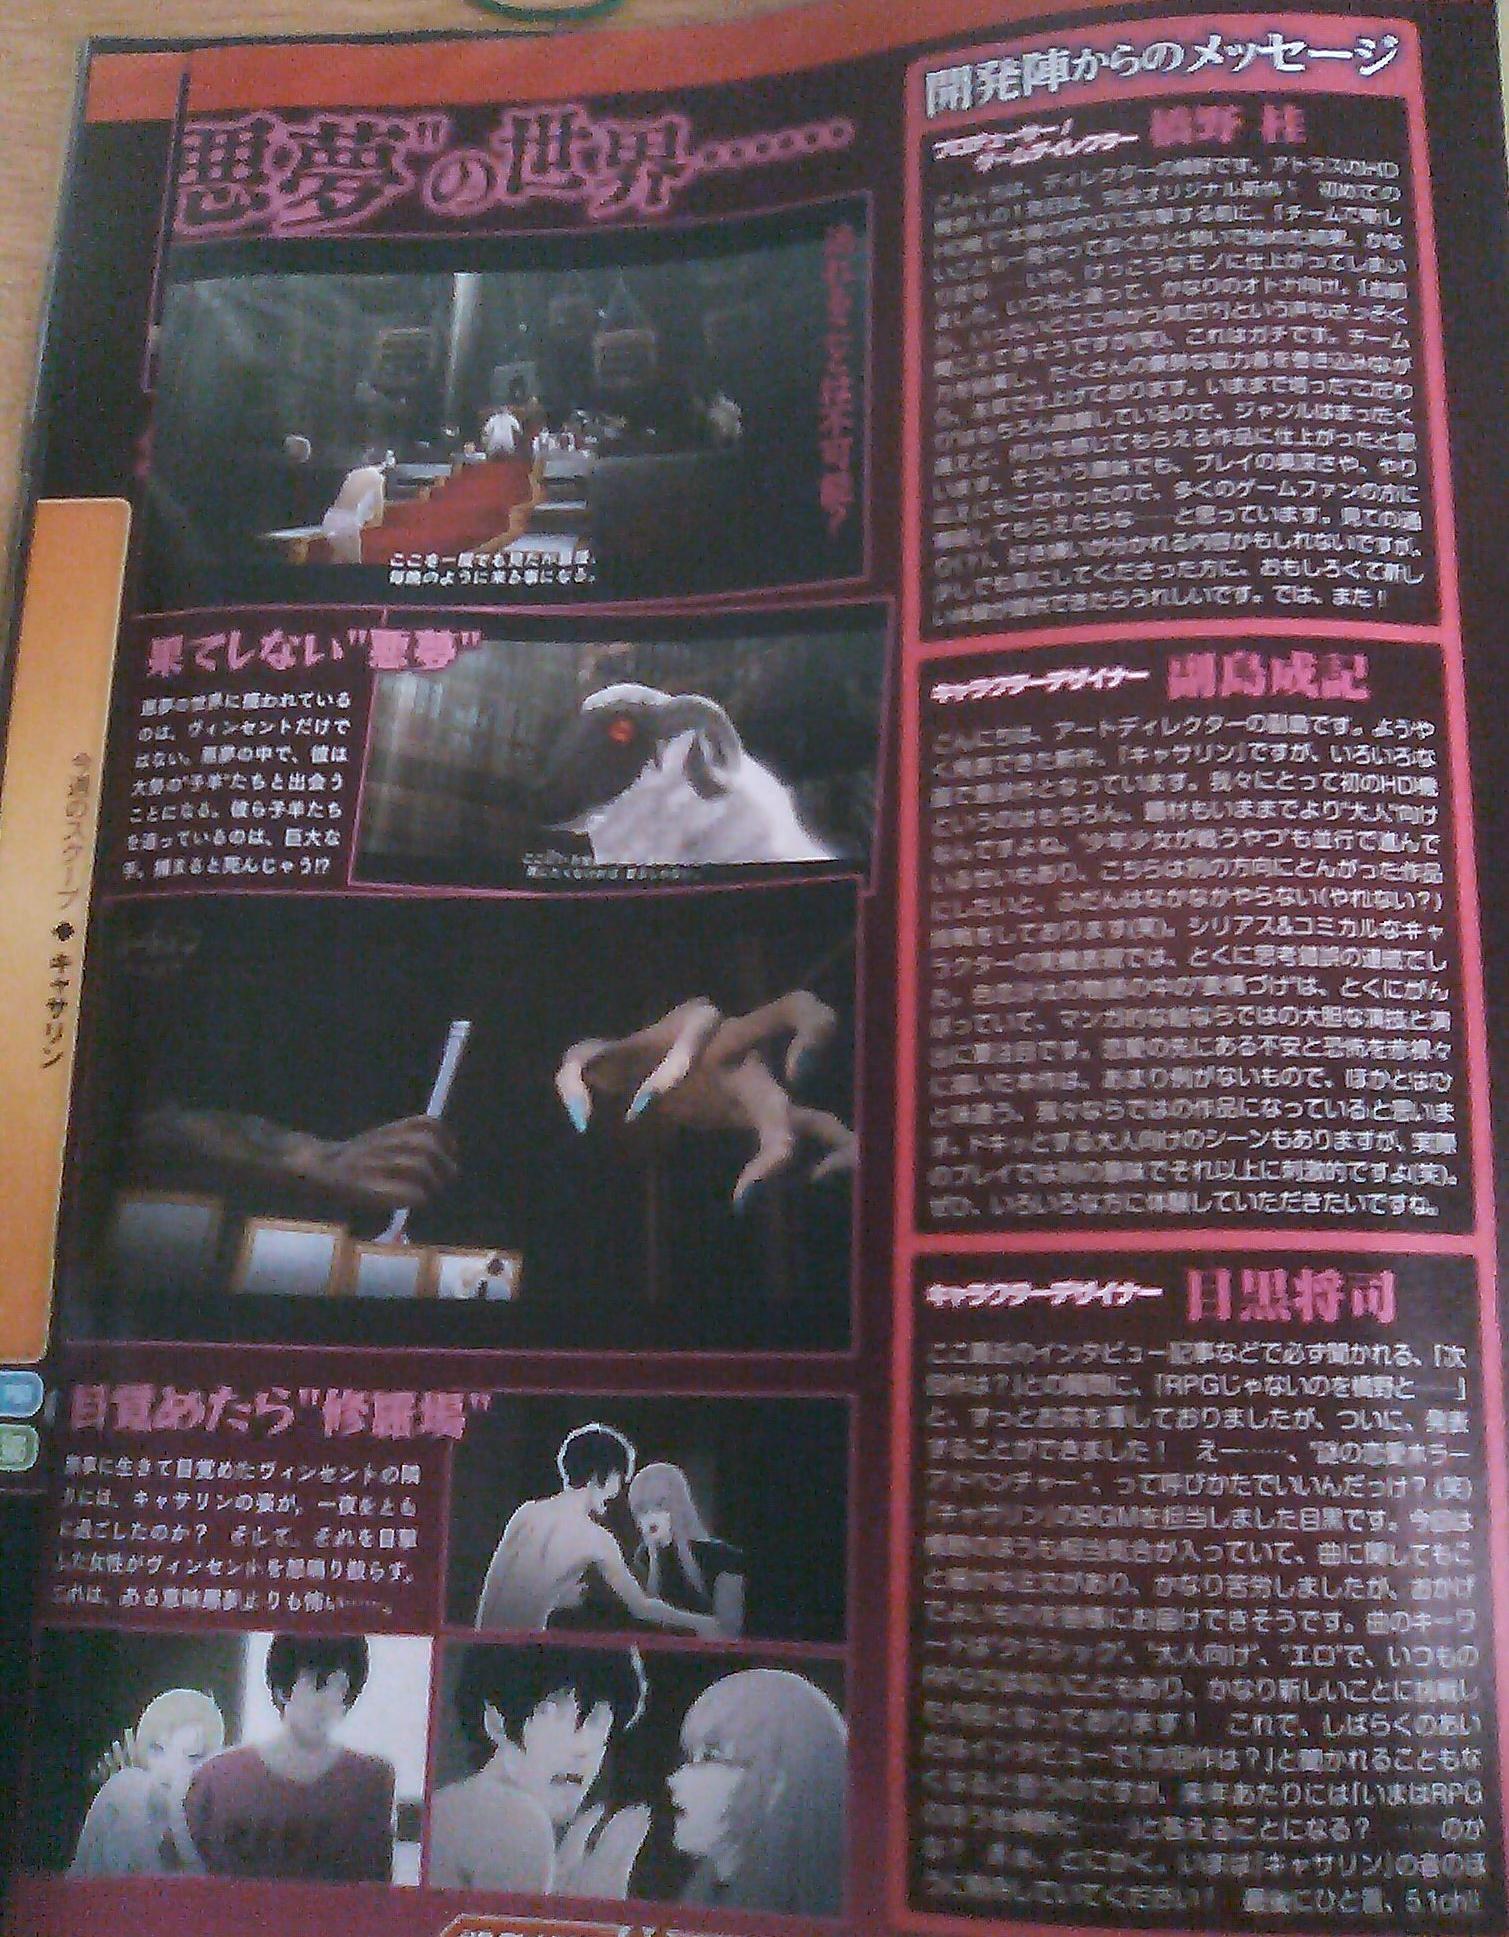 kais games weeks famitsu game this from soejima shigenori taken scan pictureblurry doing producing issue character horroradult magazine action-adventure katsura hashino apparently screens some spin-off possible portable composing meguro shoji vincent persona designs initial working company project named xbox catherine announced been xbox360 title atlus